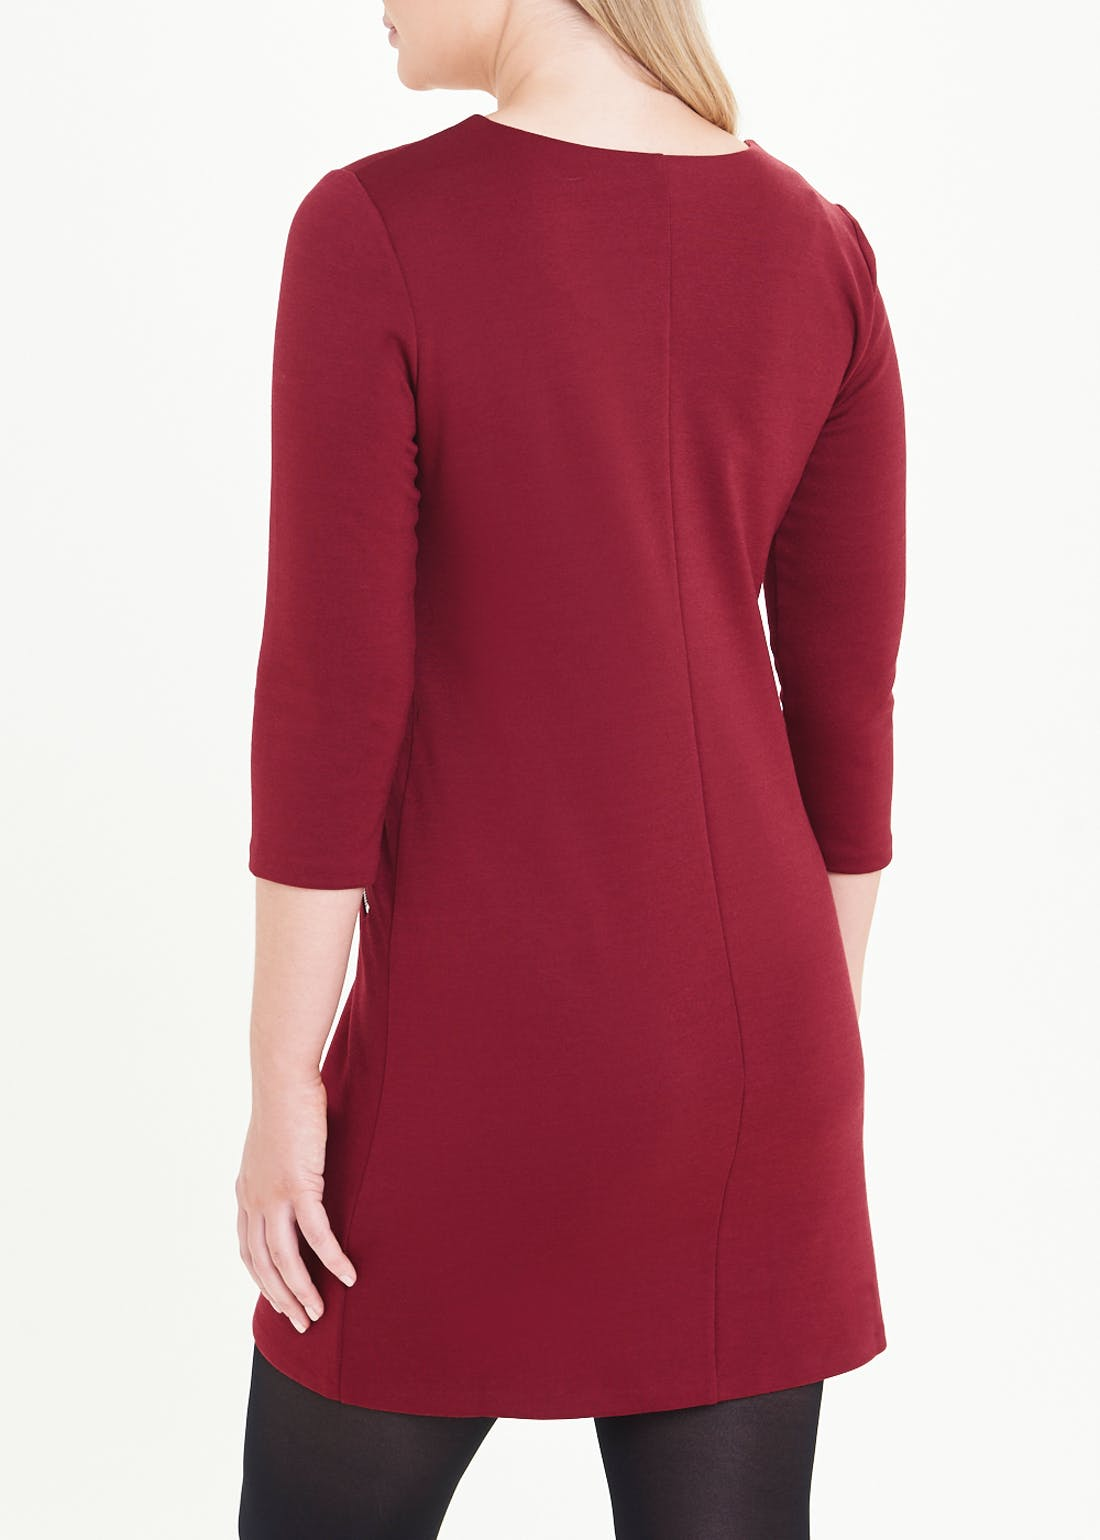 Burgundy 3/4 Sleeve Shift Dress